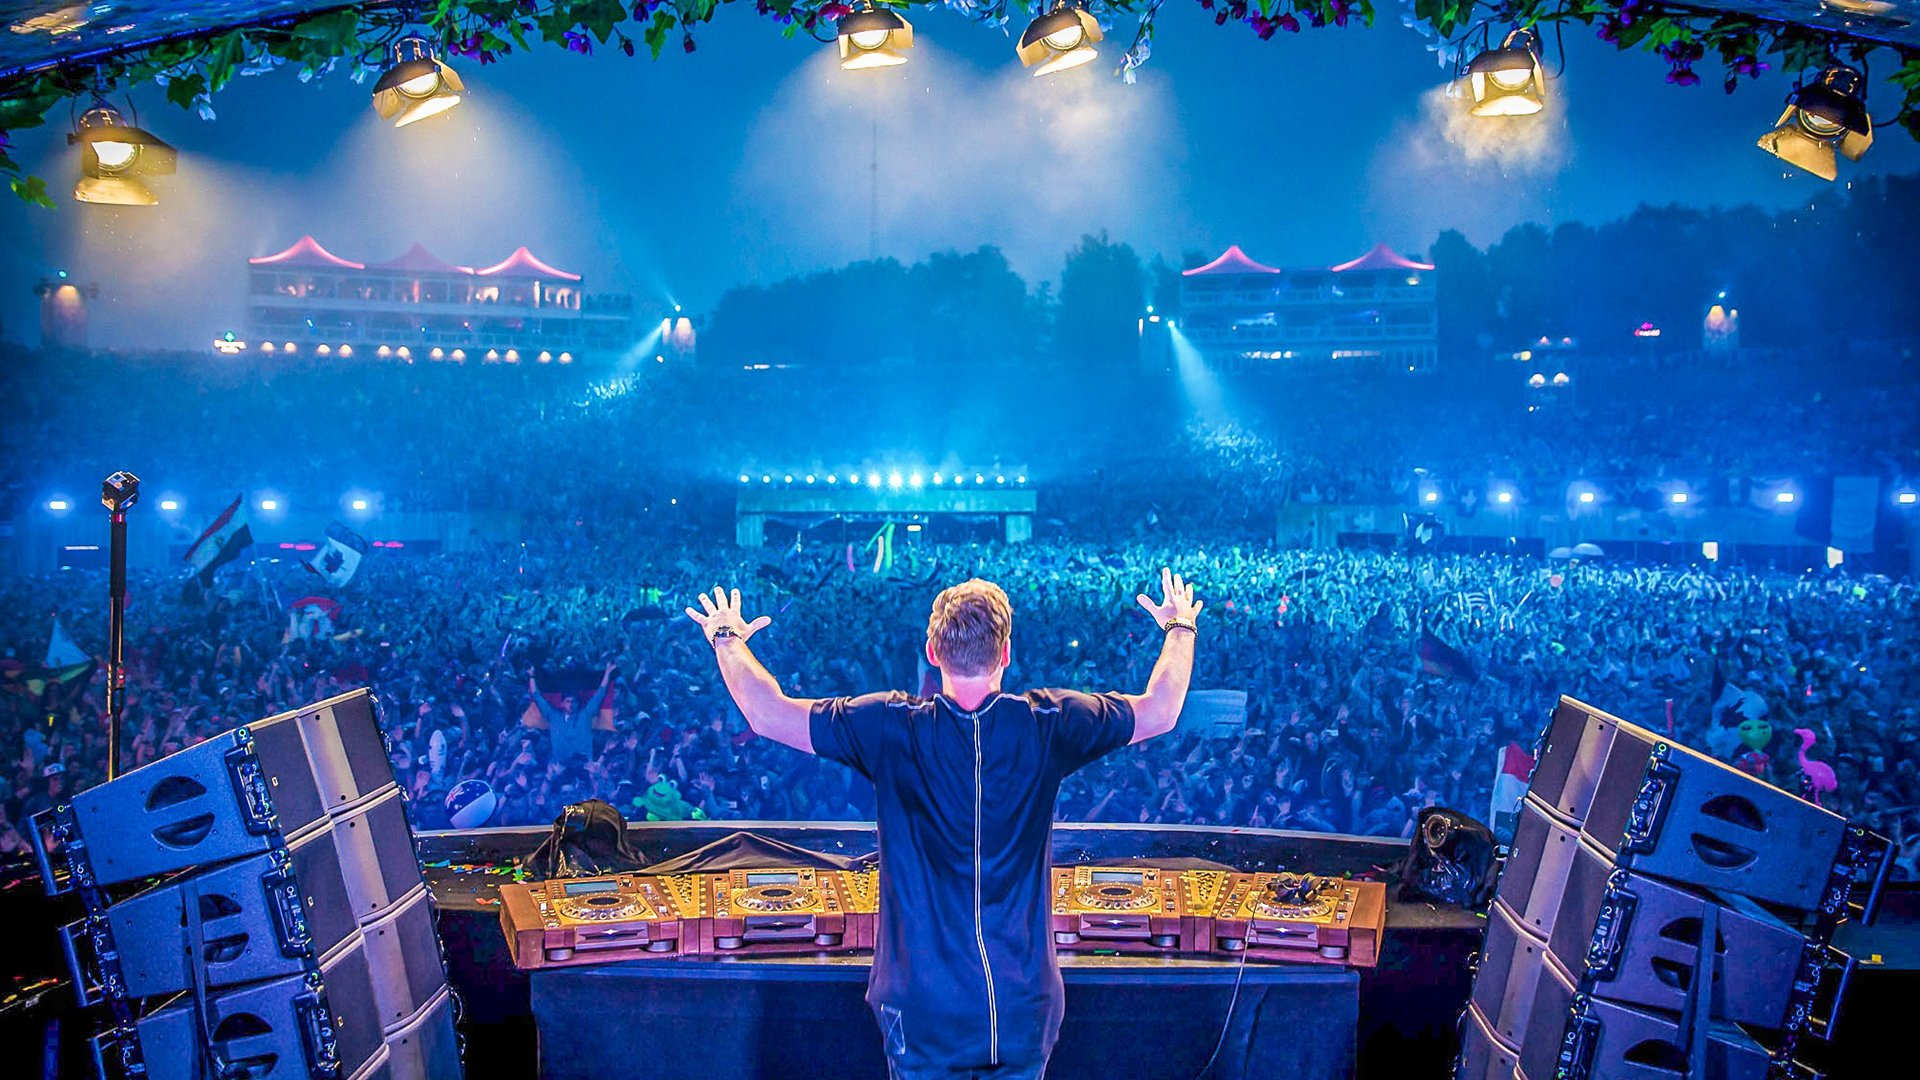 Hardwell LIVE @ Tomorrowland 2015 Full HD Papel de Parede ...